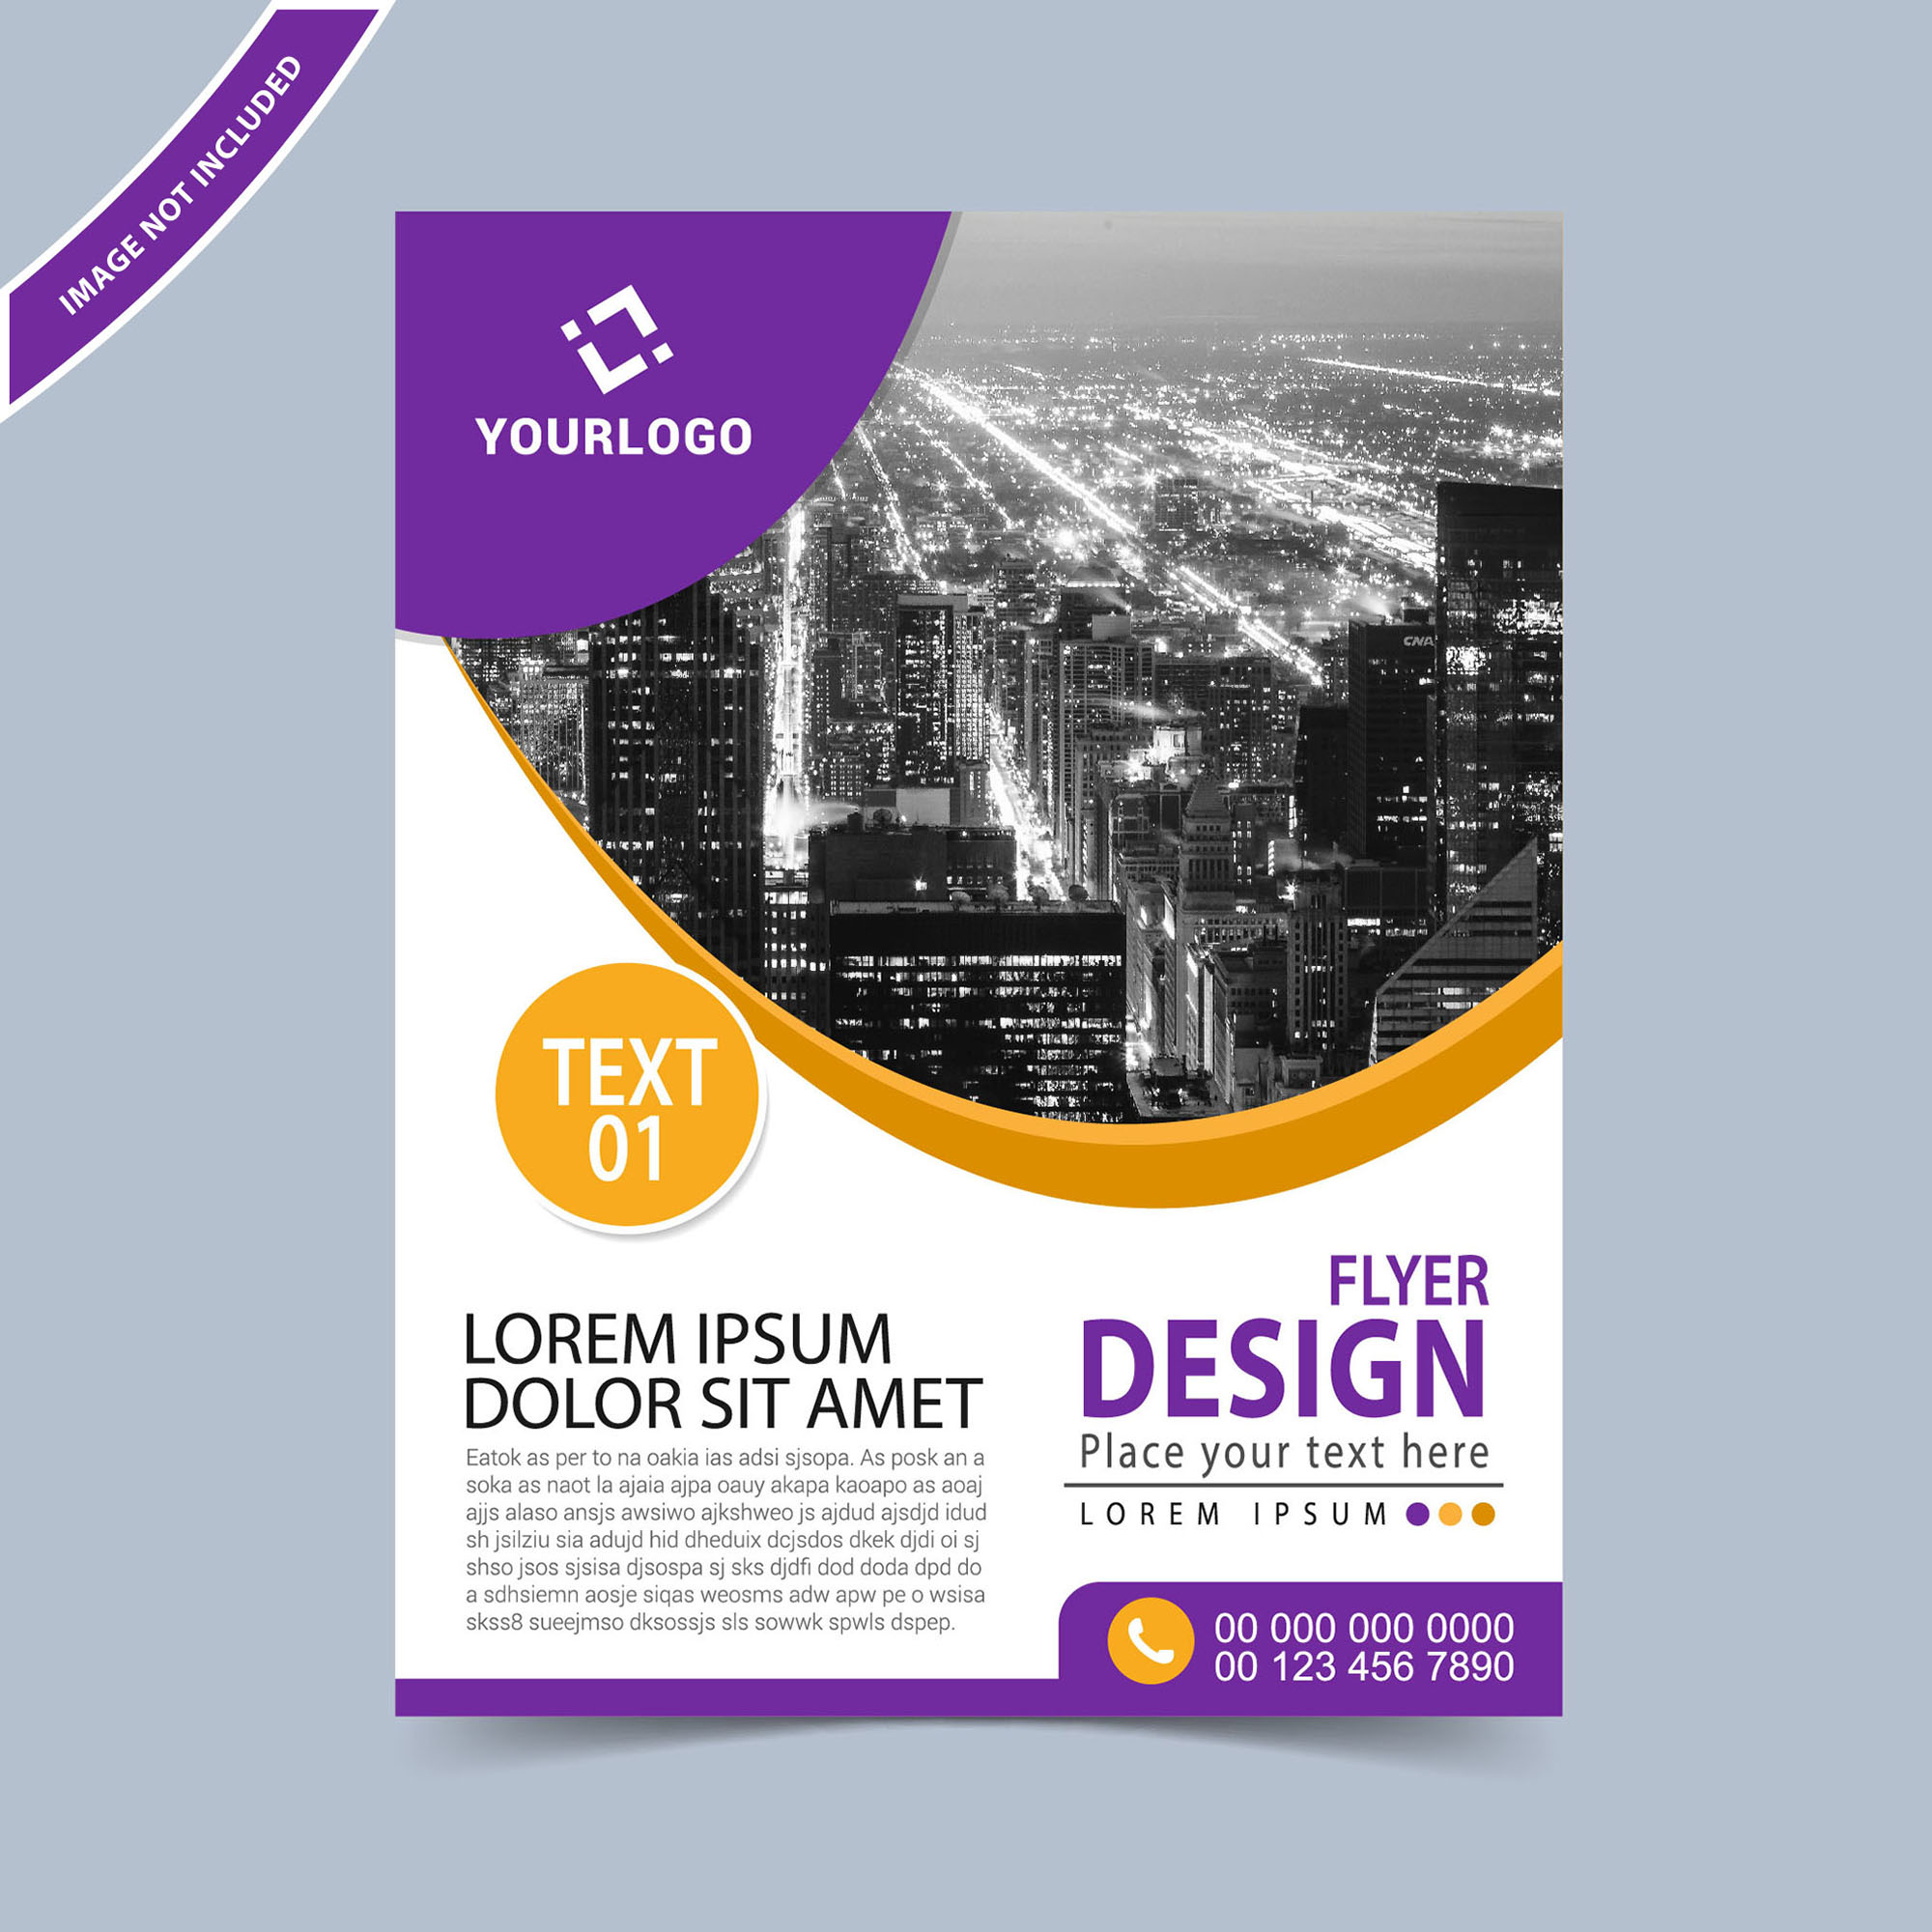 mailer templates design free - business flyer design template free download